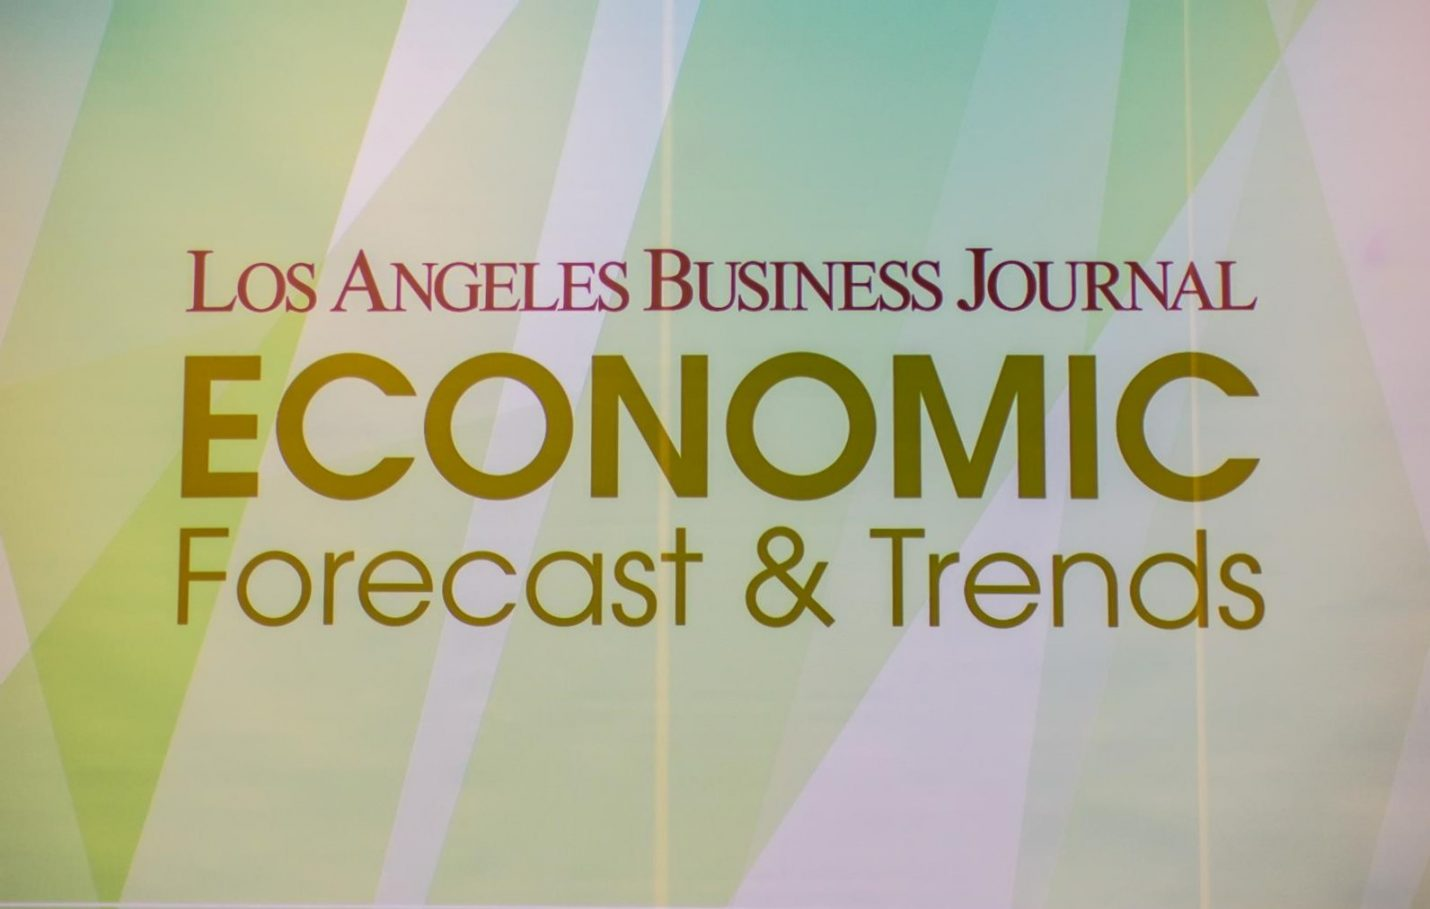 Economic Forecast & Trends